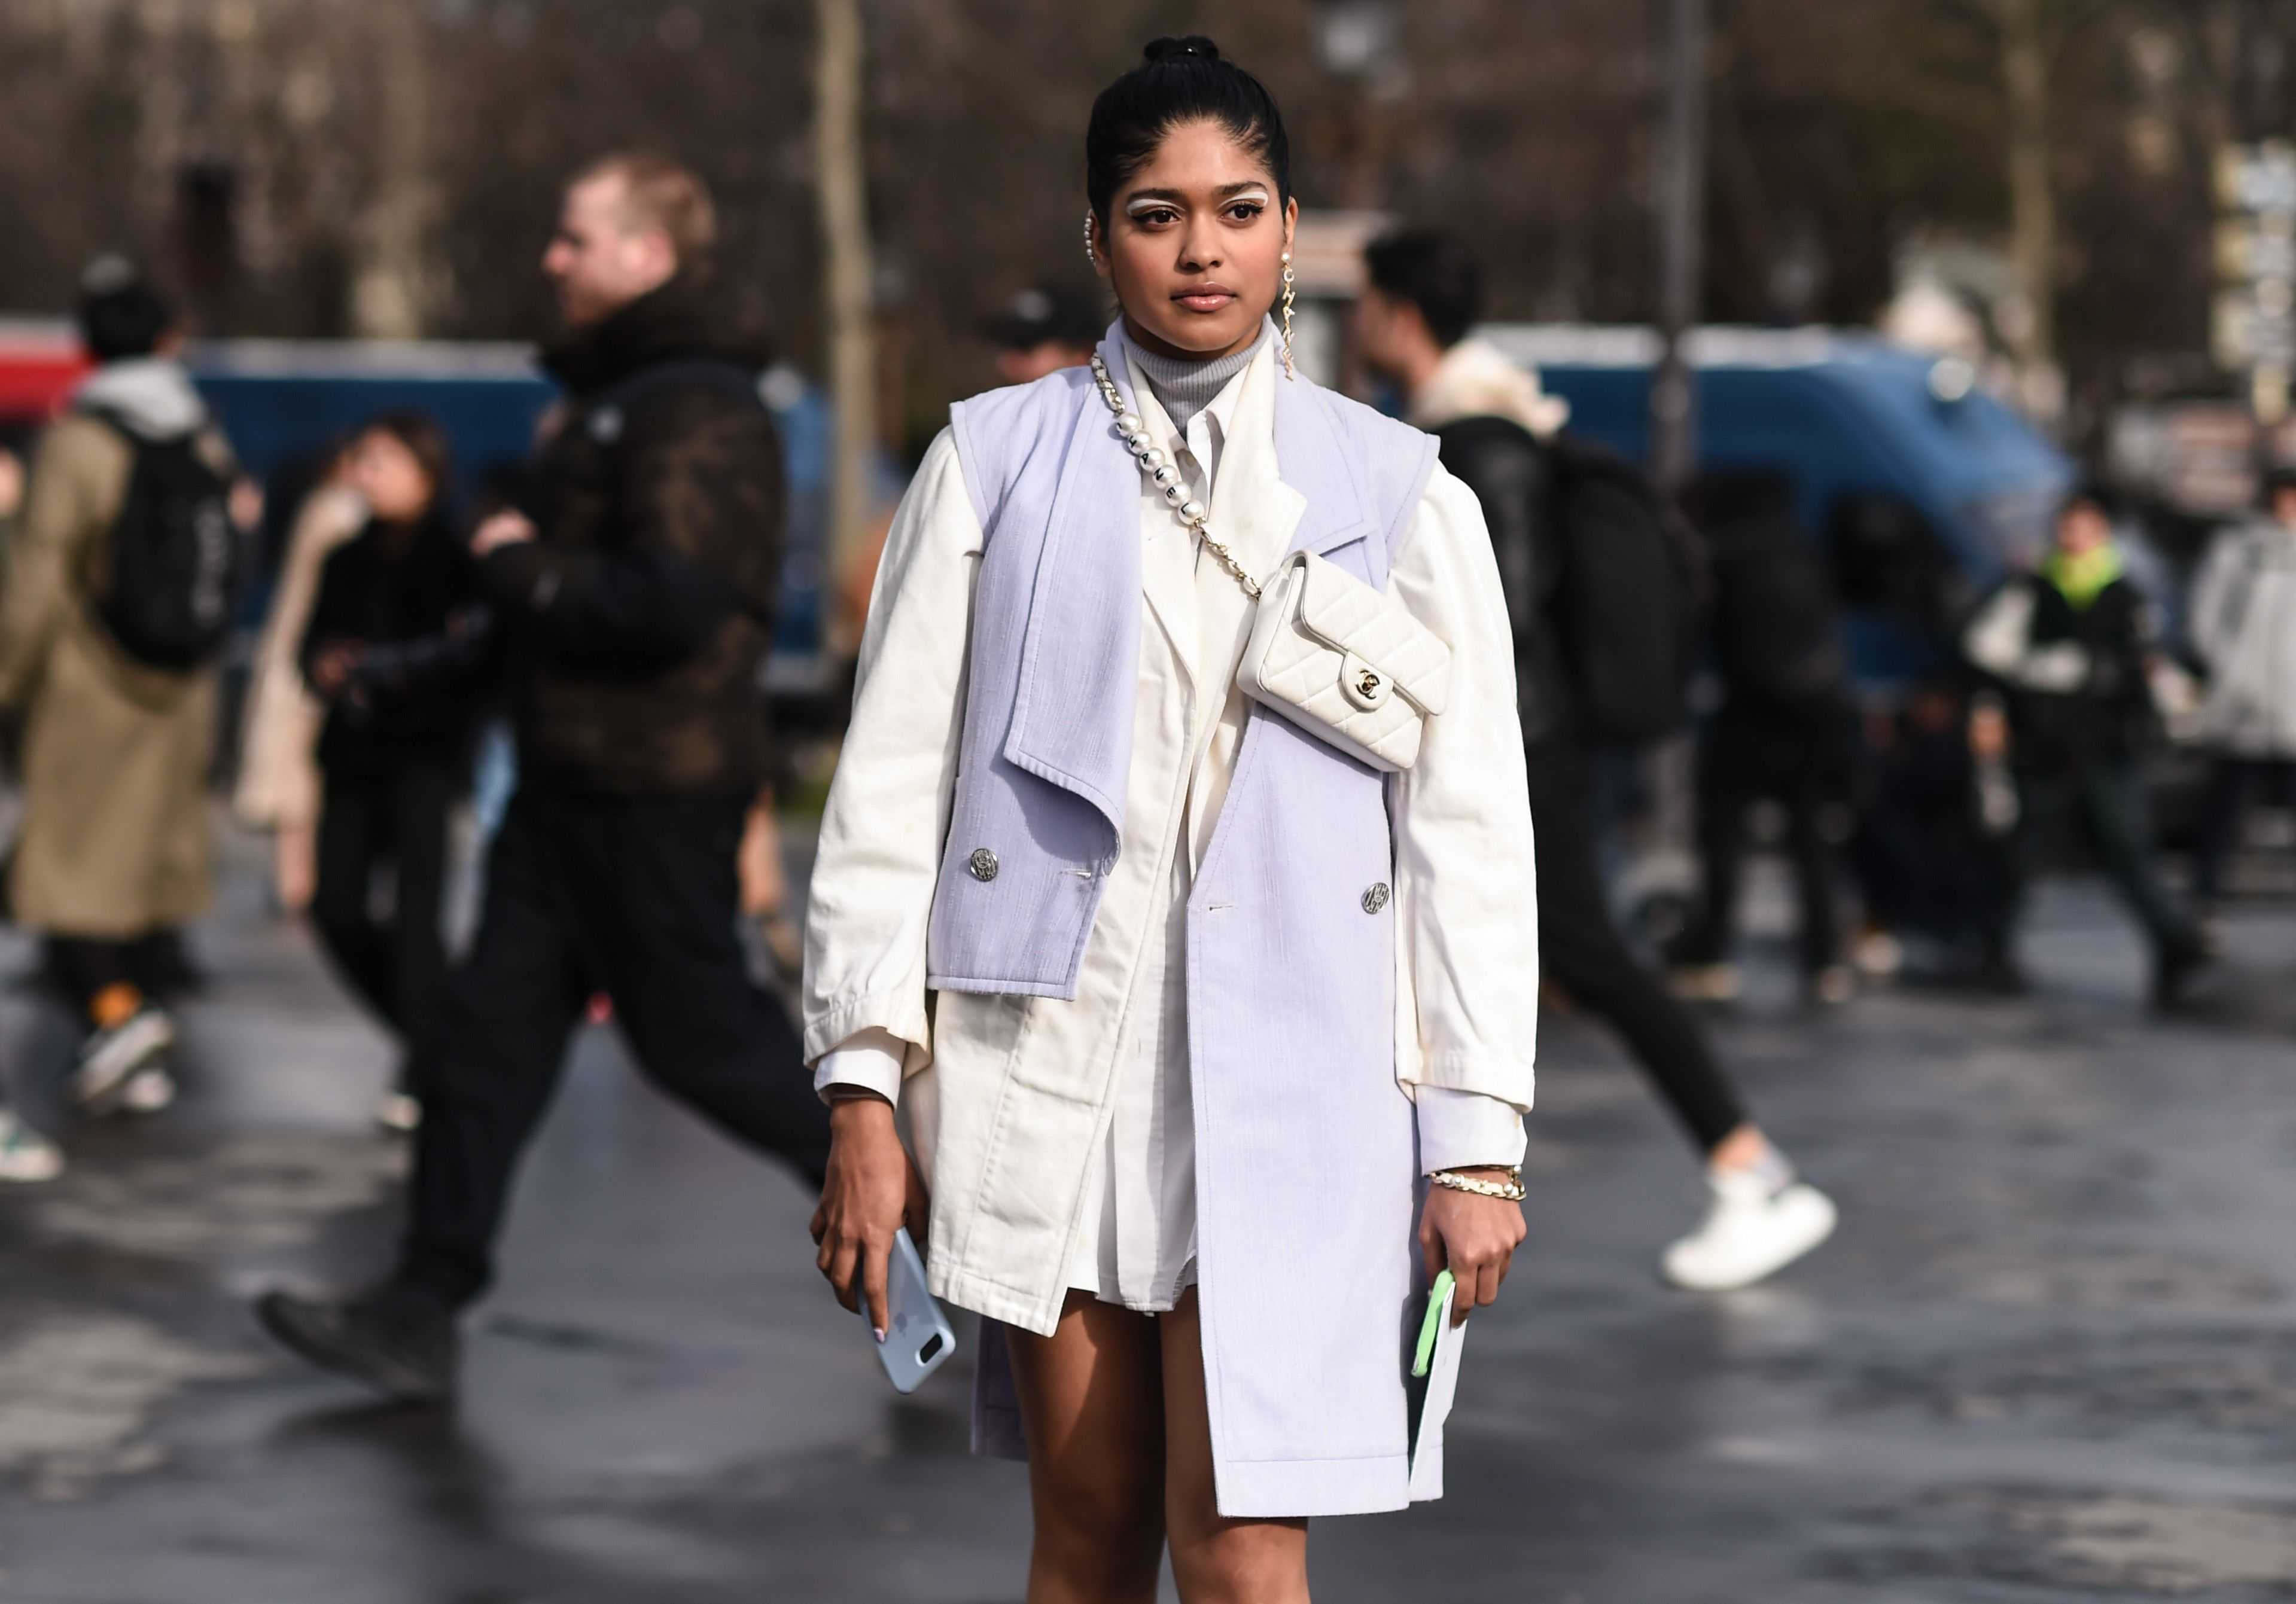 18 of the Best Fall Jackets and Coats for Women You Can Buy This Year